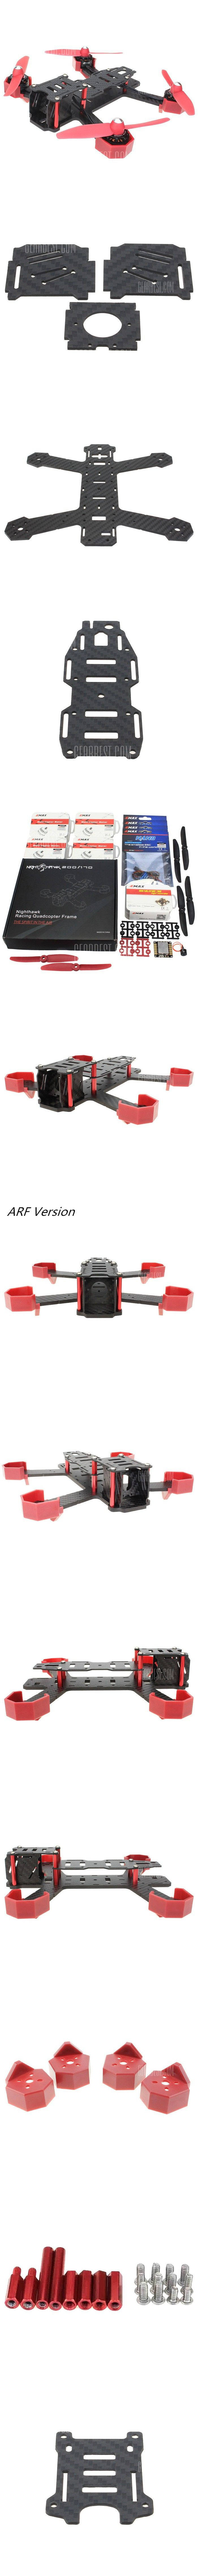 EMAX Nighthawk 200 Pure Carbon Fiber Quadcopter -  ARF Version - FREE SHIPPING - Price: $159.99 - Buy Now: https://ariani-shop.com/s/143311